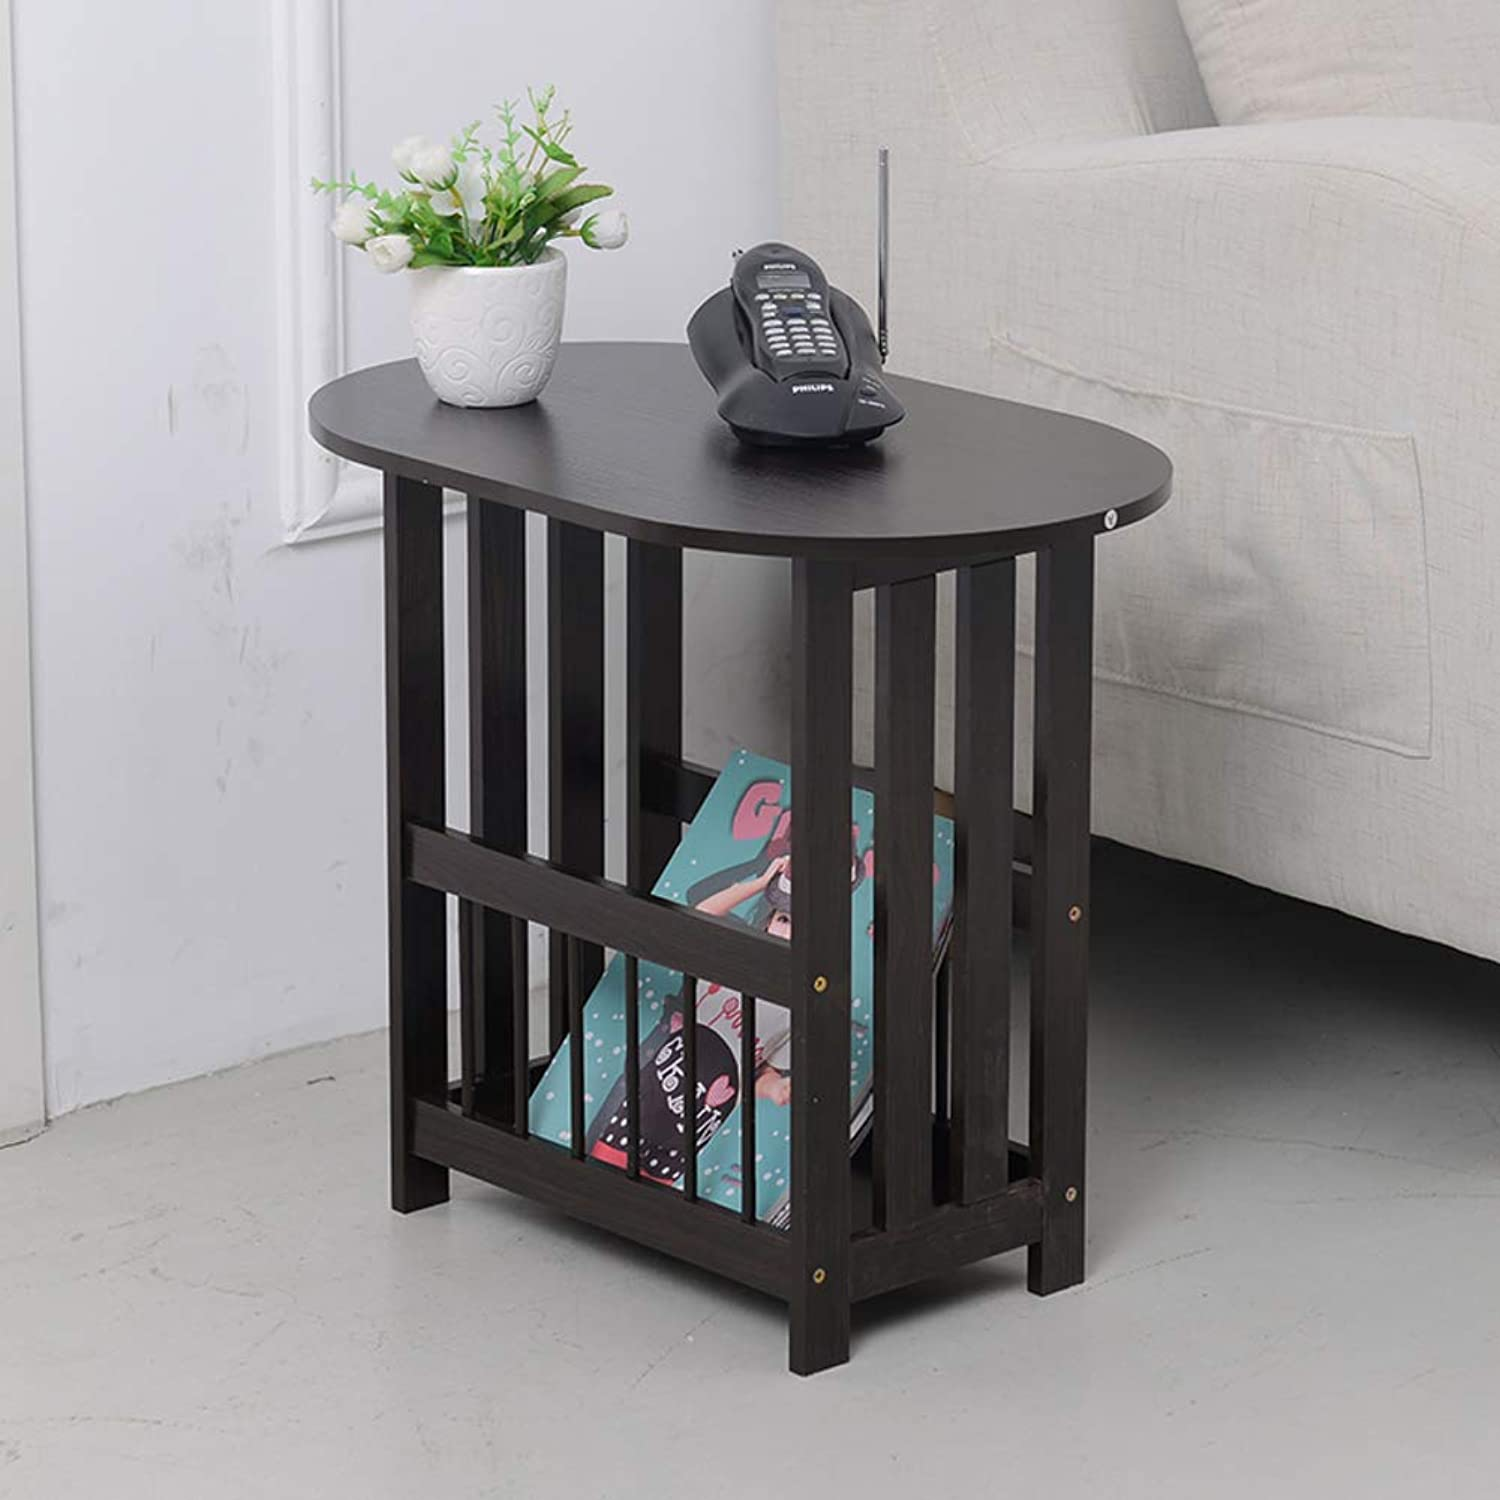 End Table with Storage Basket,Folding Side Table C Shaped Table Bedside Stand Coffee Table Portable Notebook Table Stand-B 56.5x49cm(22x19inch)